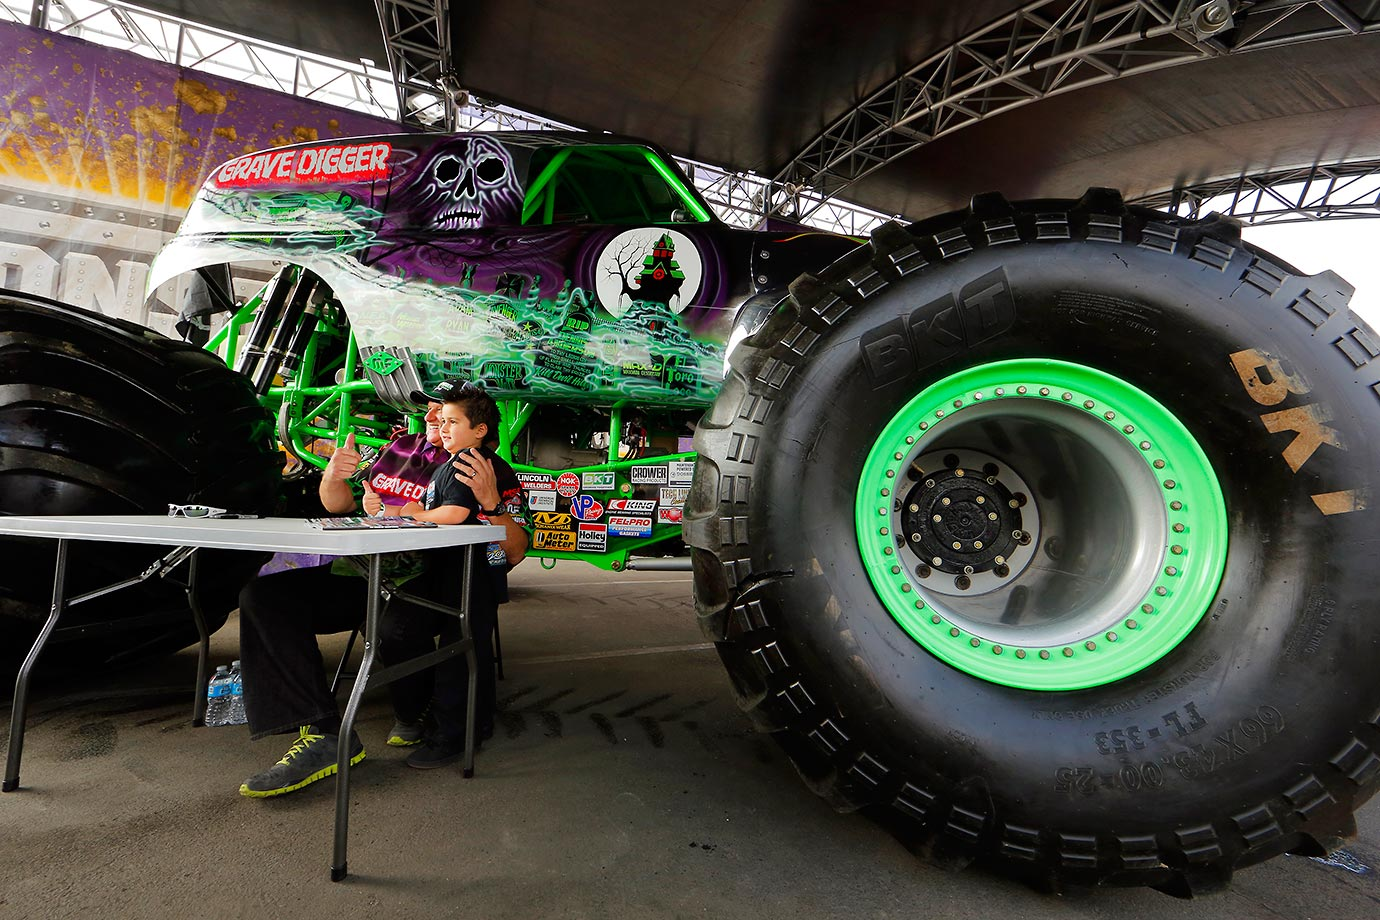 Dennis Anderson, monster truck driver of World Finals Champion 'Grave Digger, poses with a young fan next to his truck after signing autographs at the pre-race pit party.